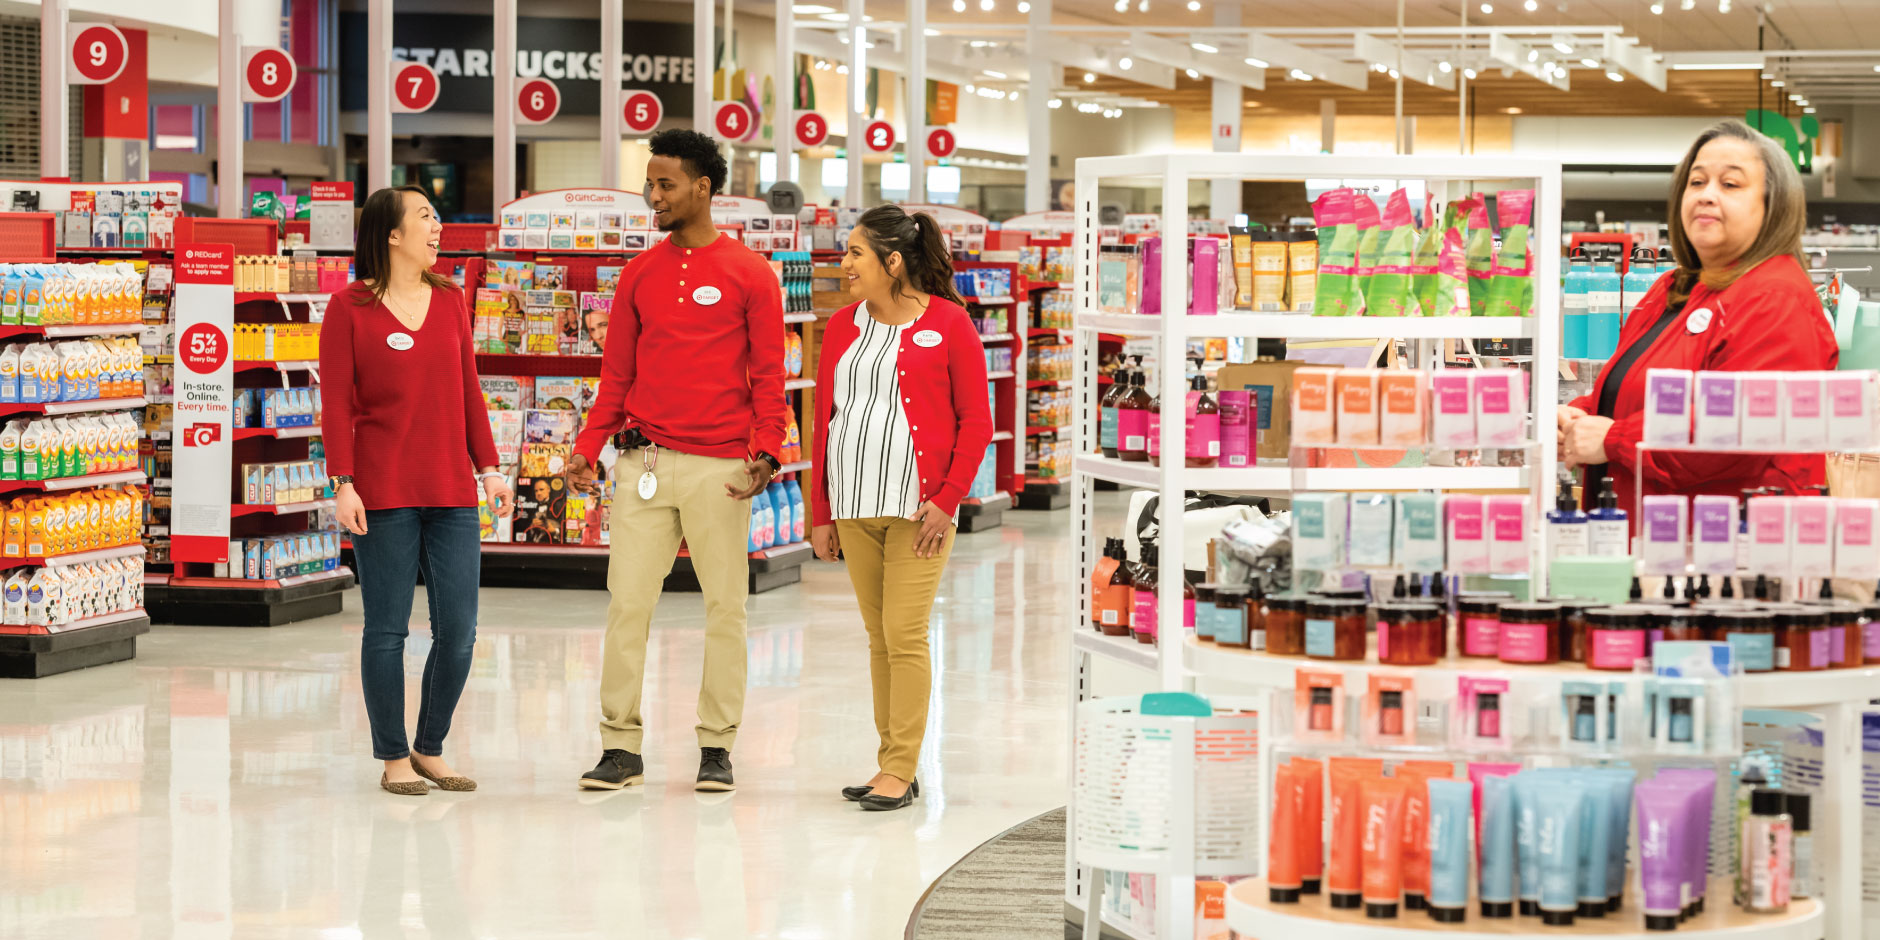 Three team members laugh as they walk an aisle. Nearby, a team member works on a product display.